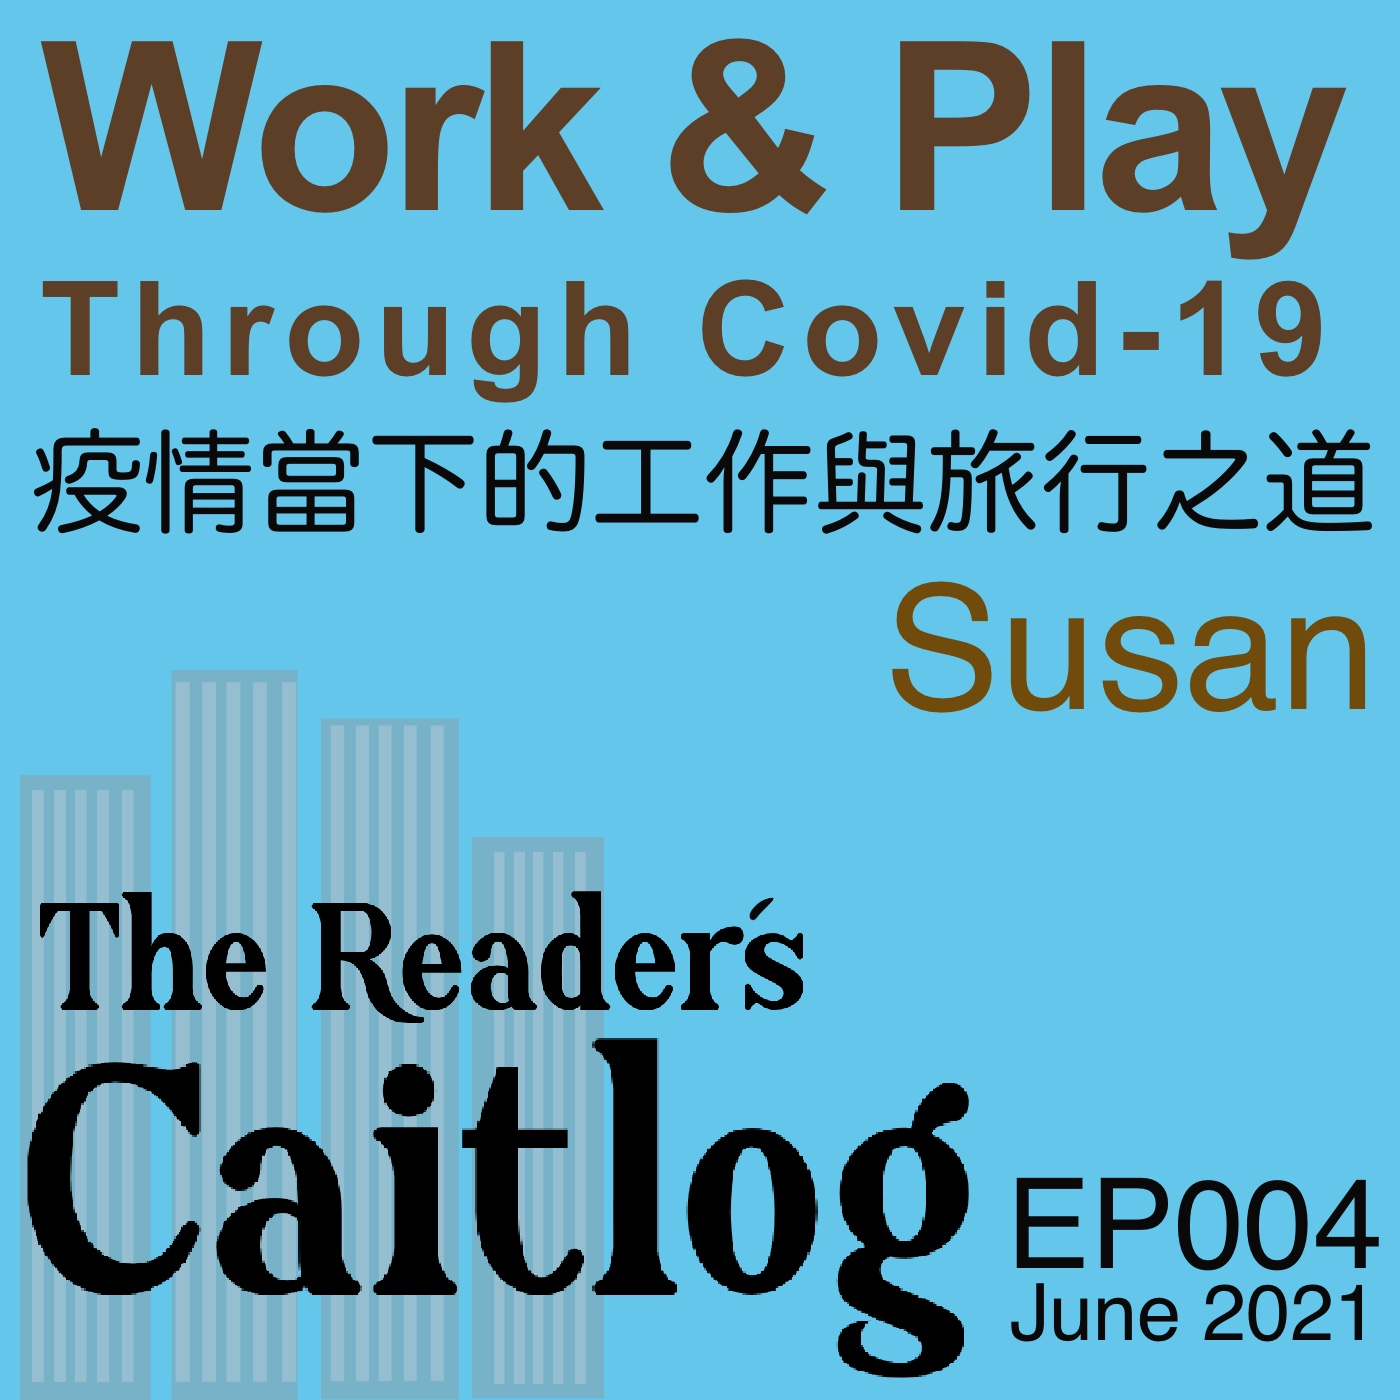 [EP004] Work and Play through Covid-19